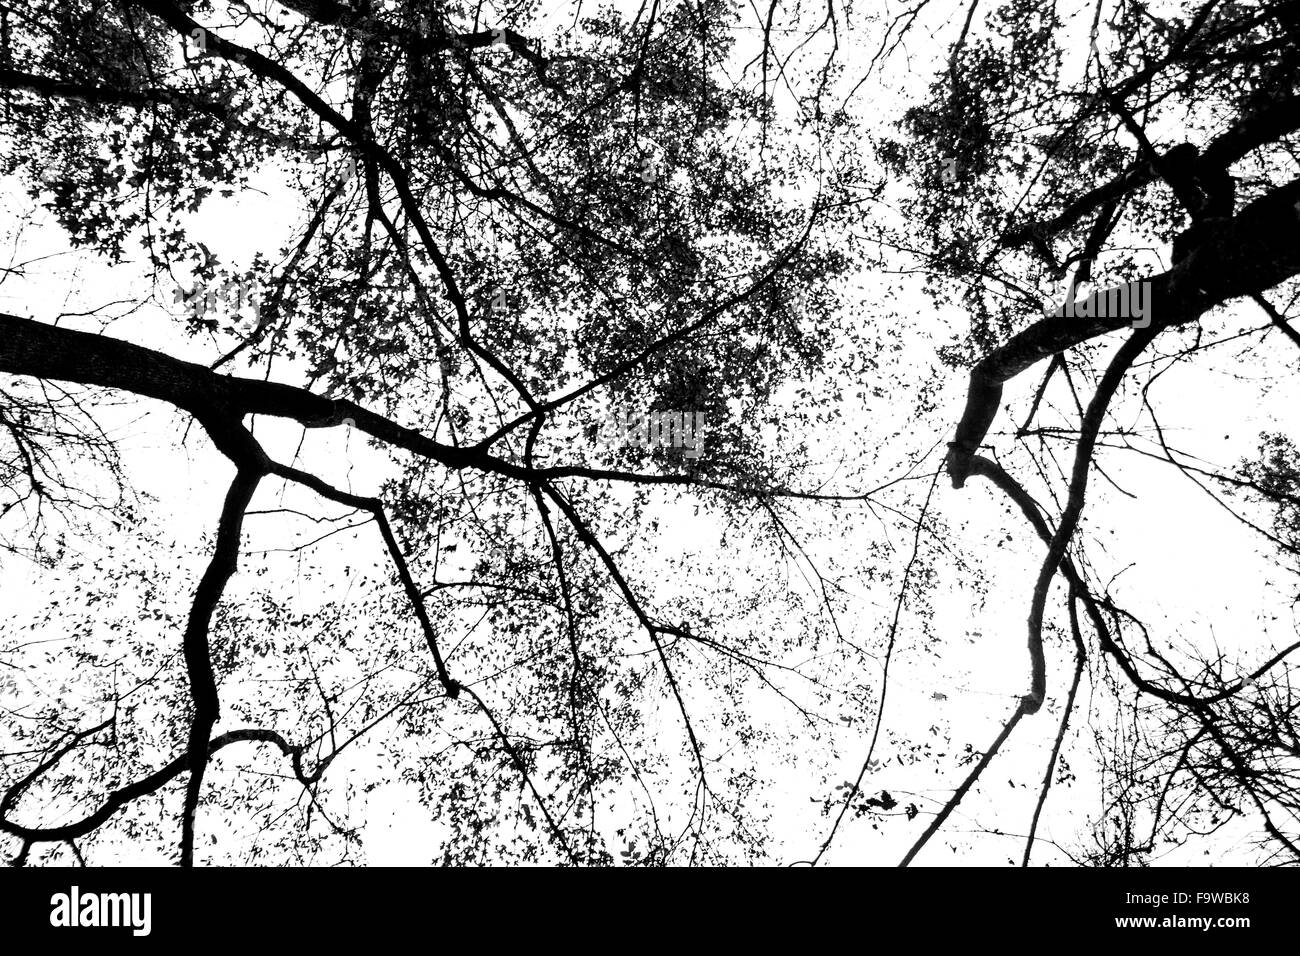 The Veins of Nature - Stock Image